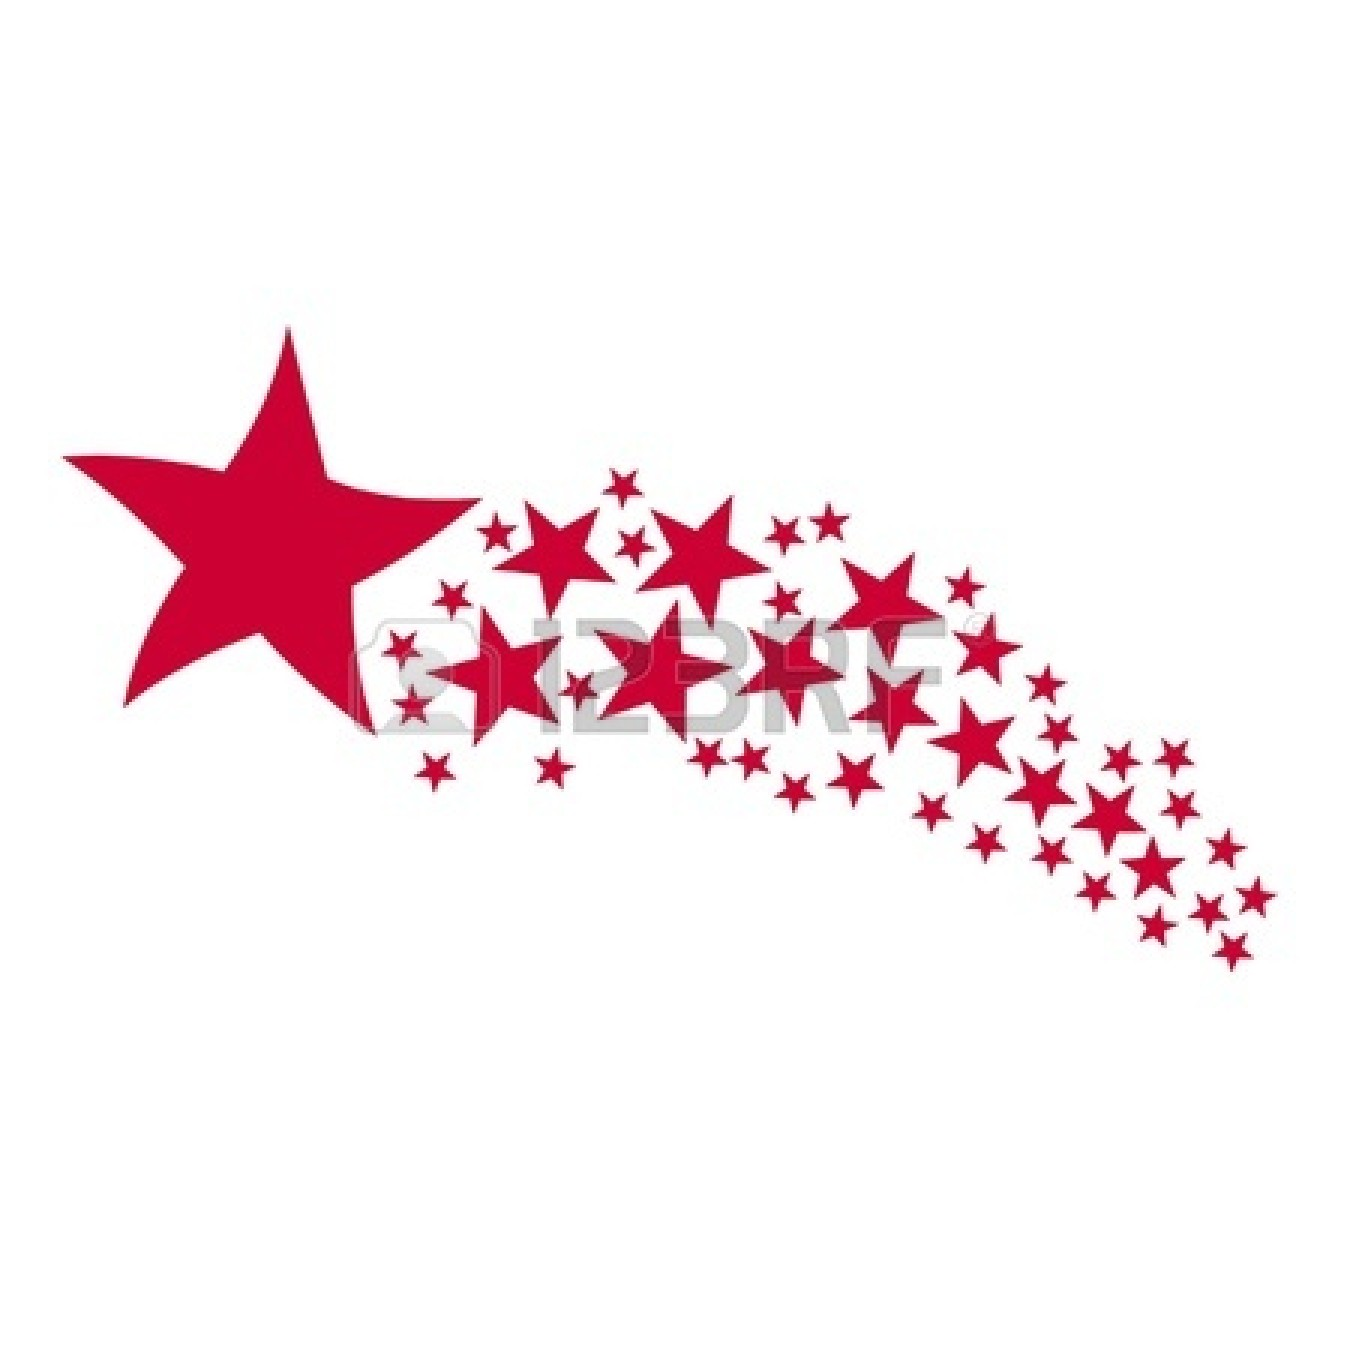 Free Clip Art Dancing With The Stars Icons Shooting Star Stock.